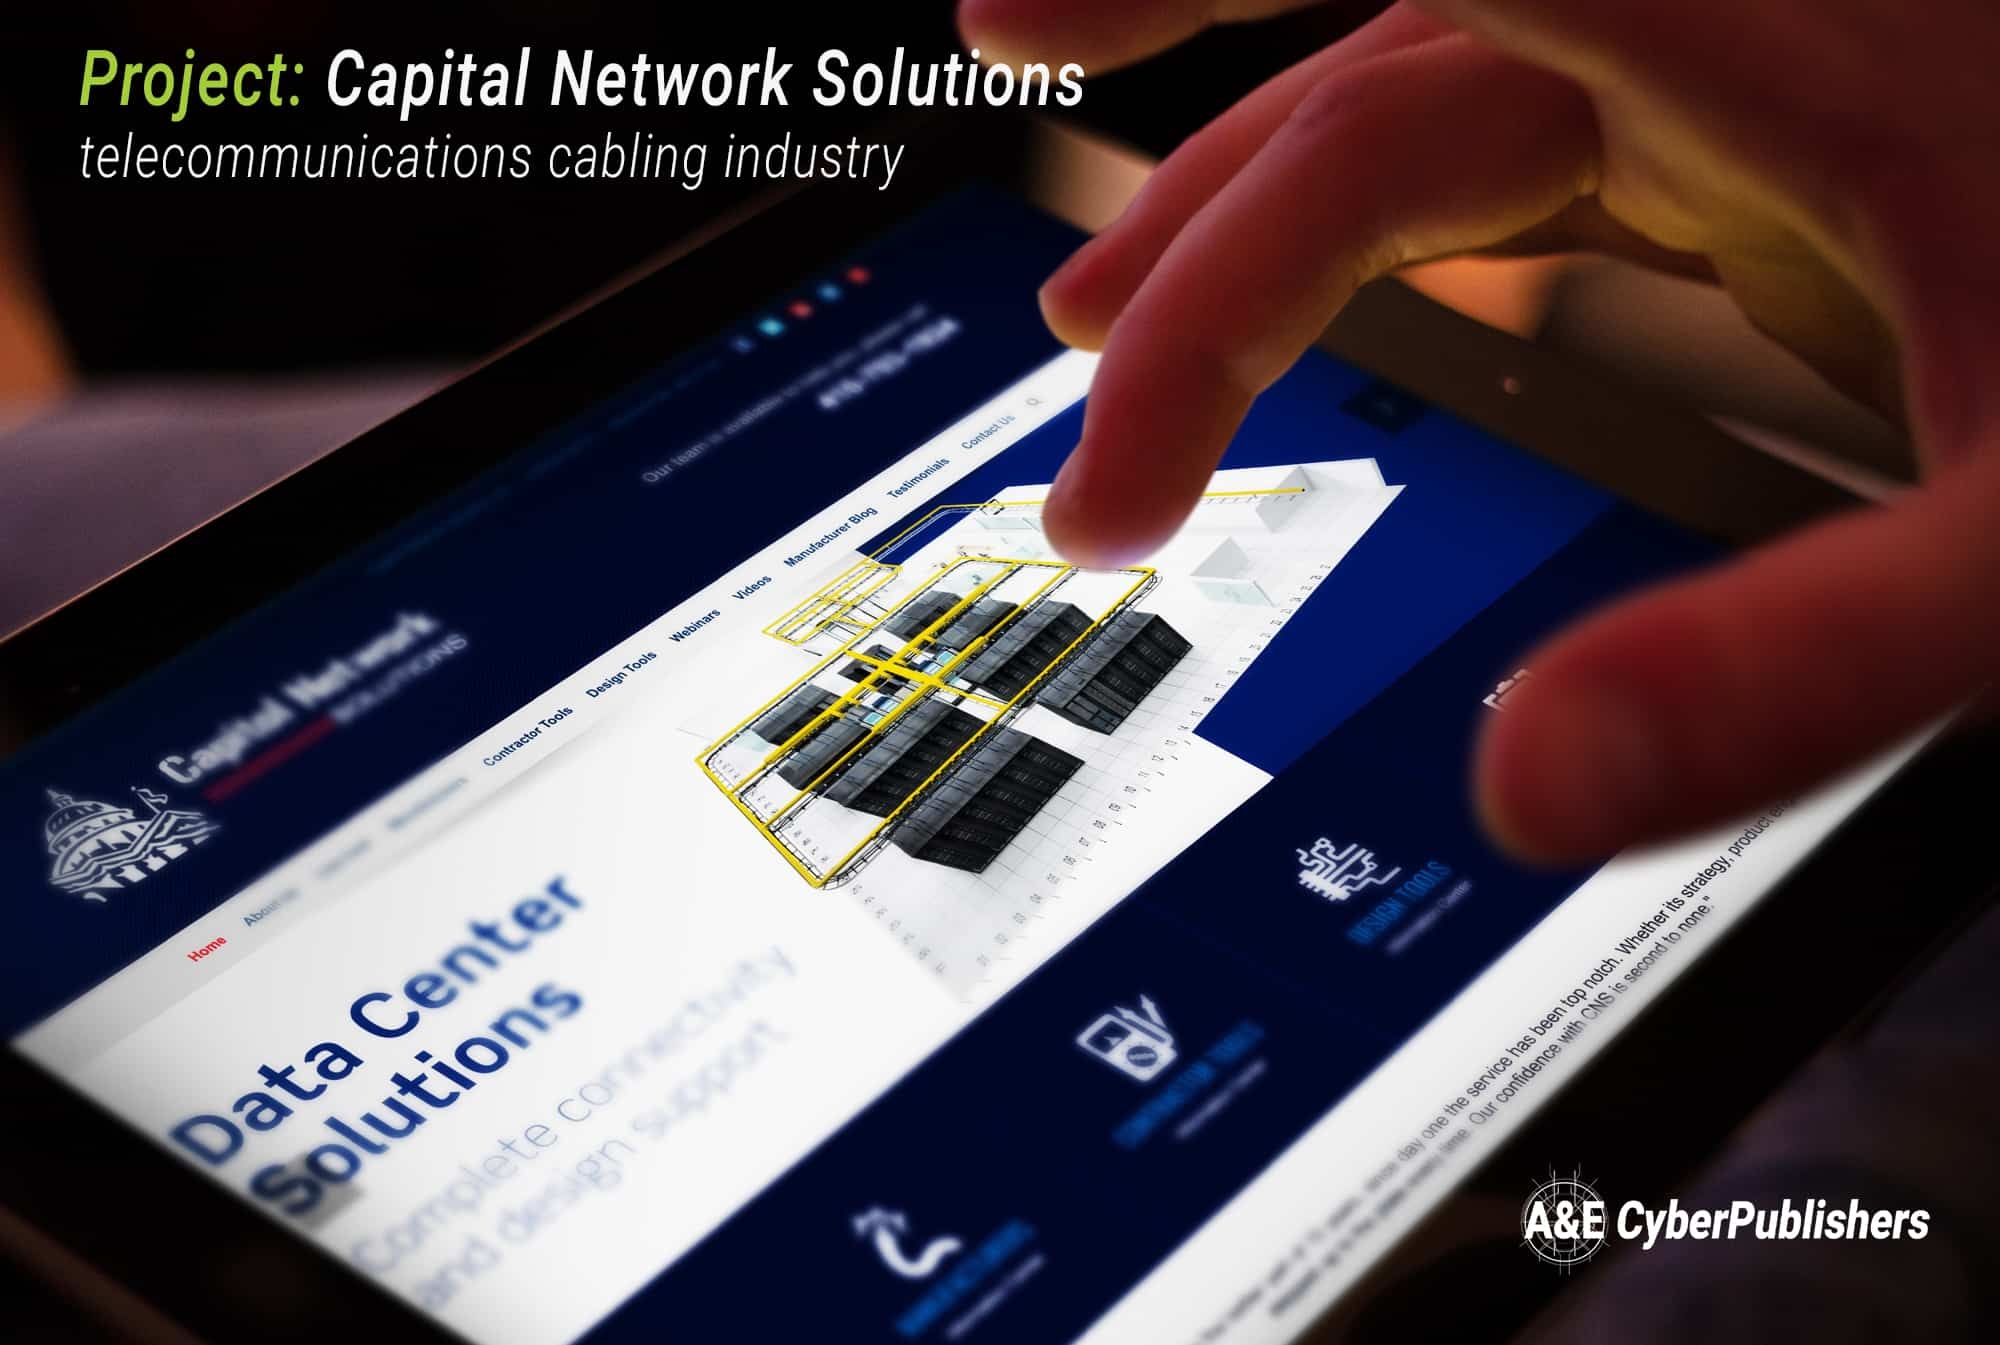 Capital Network Solutions